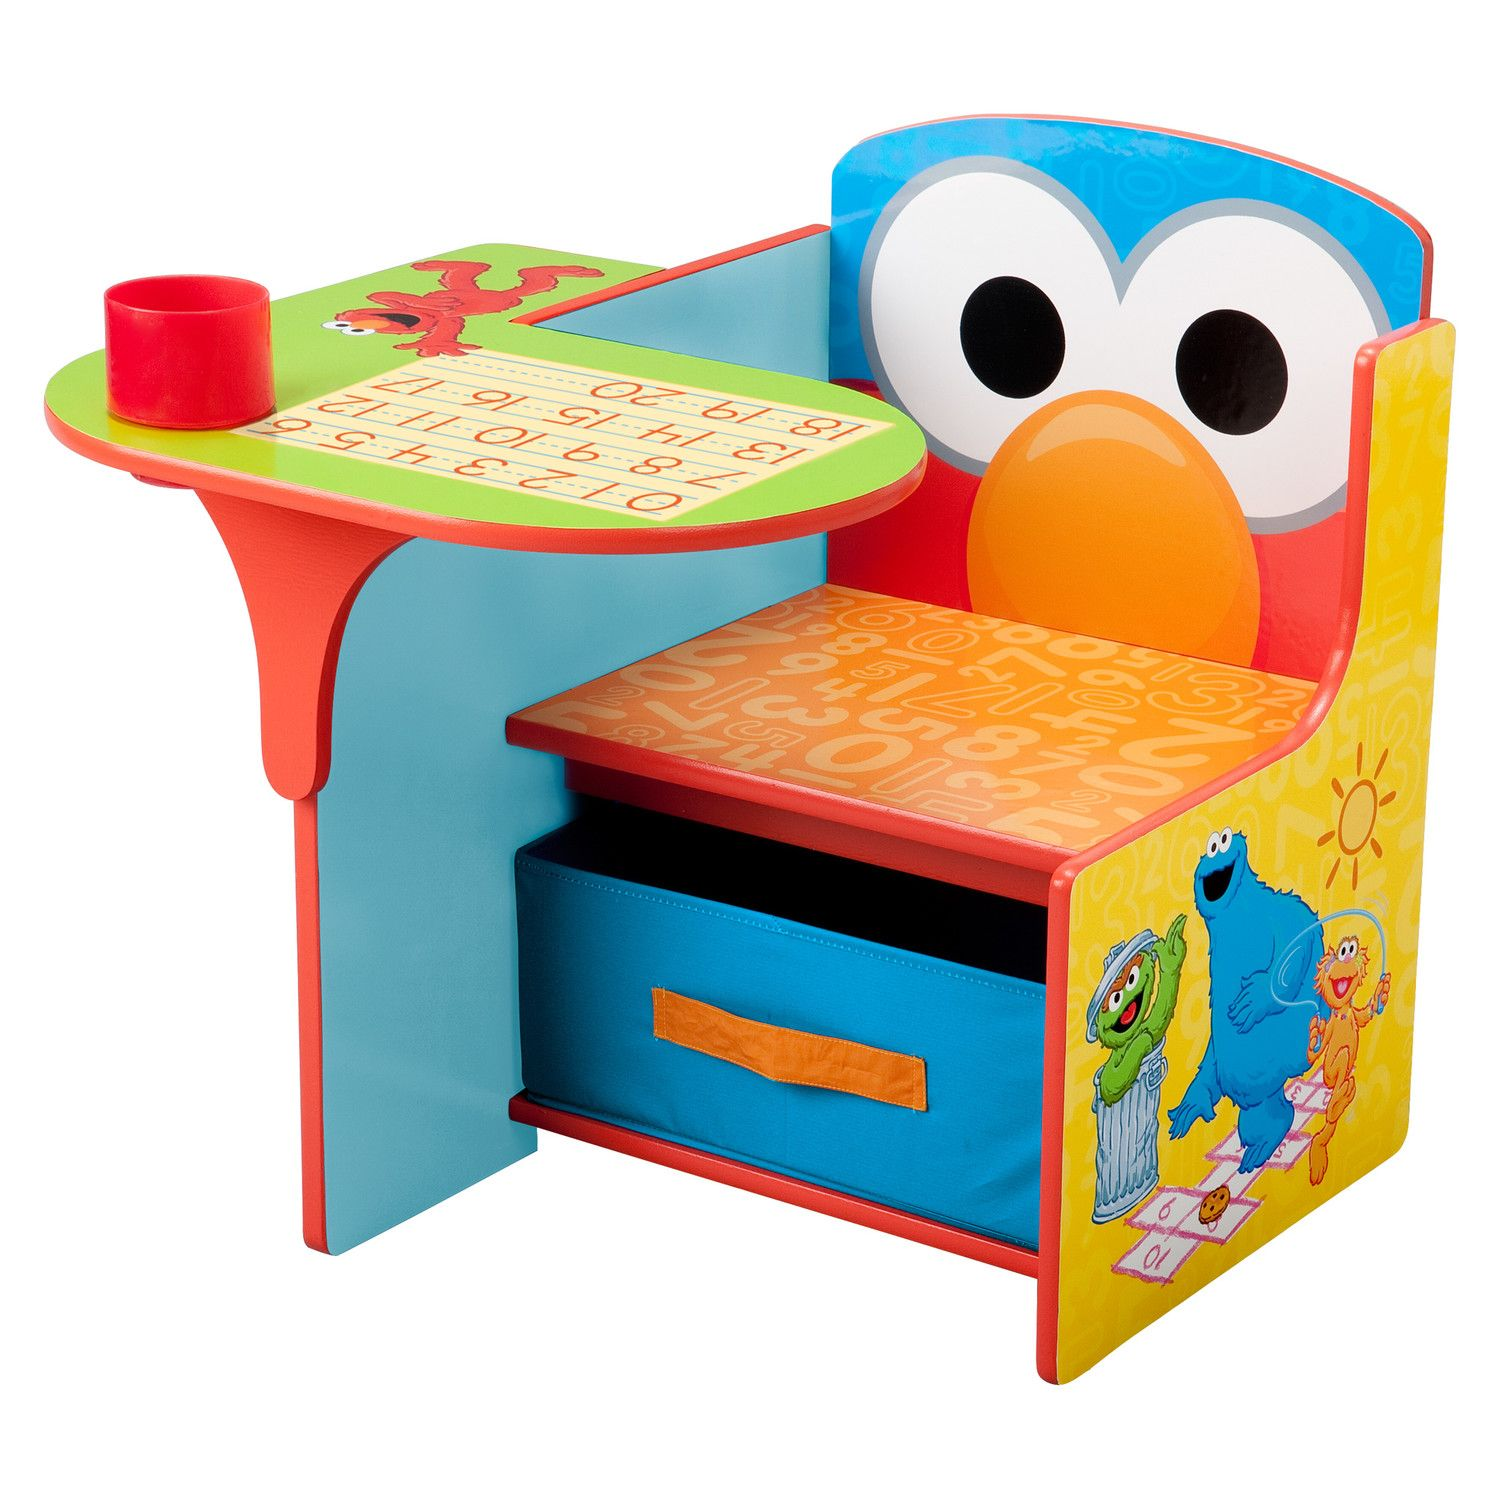 Kids Chair Desk Sesame Street Kids Desk Chair With Storage Compartment And Cup